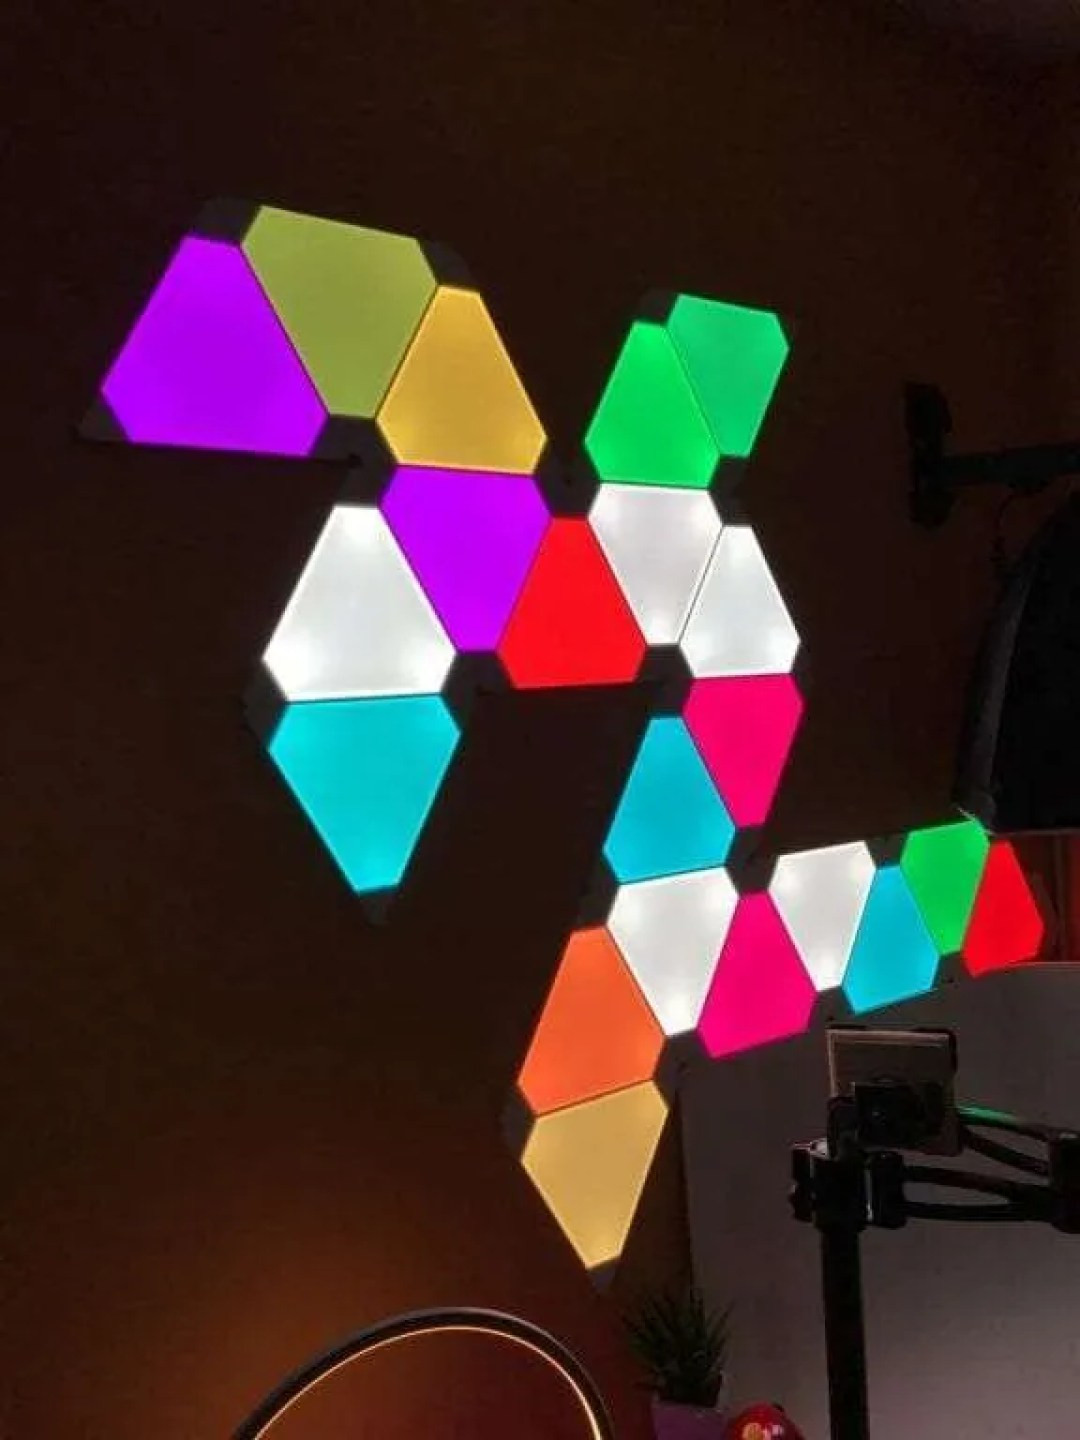 NanoLeaf Aurora Smart Lighting